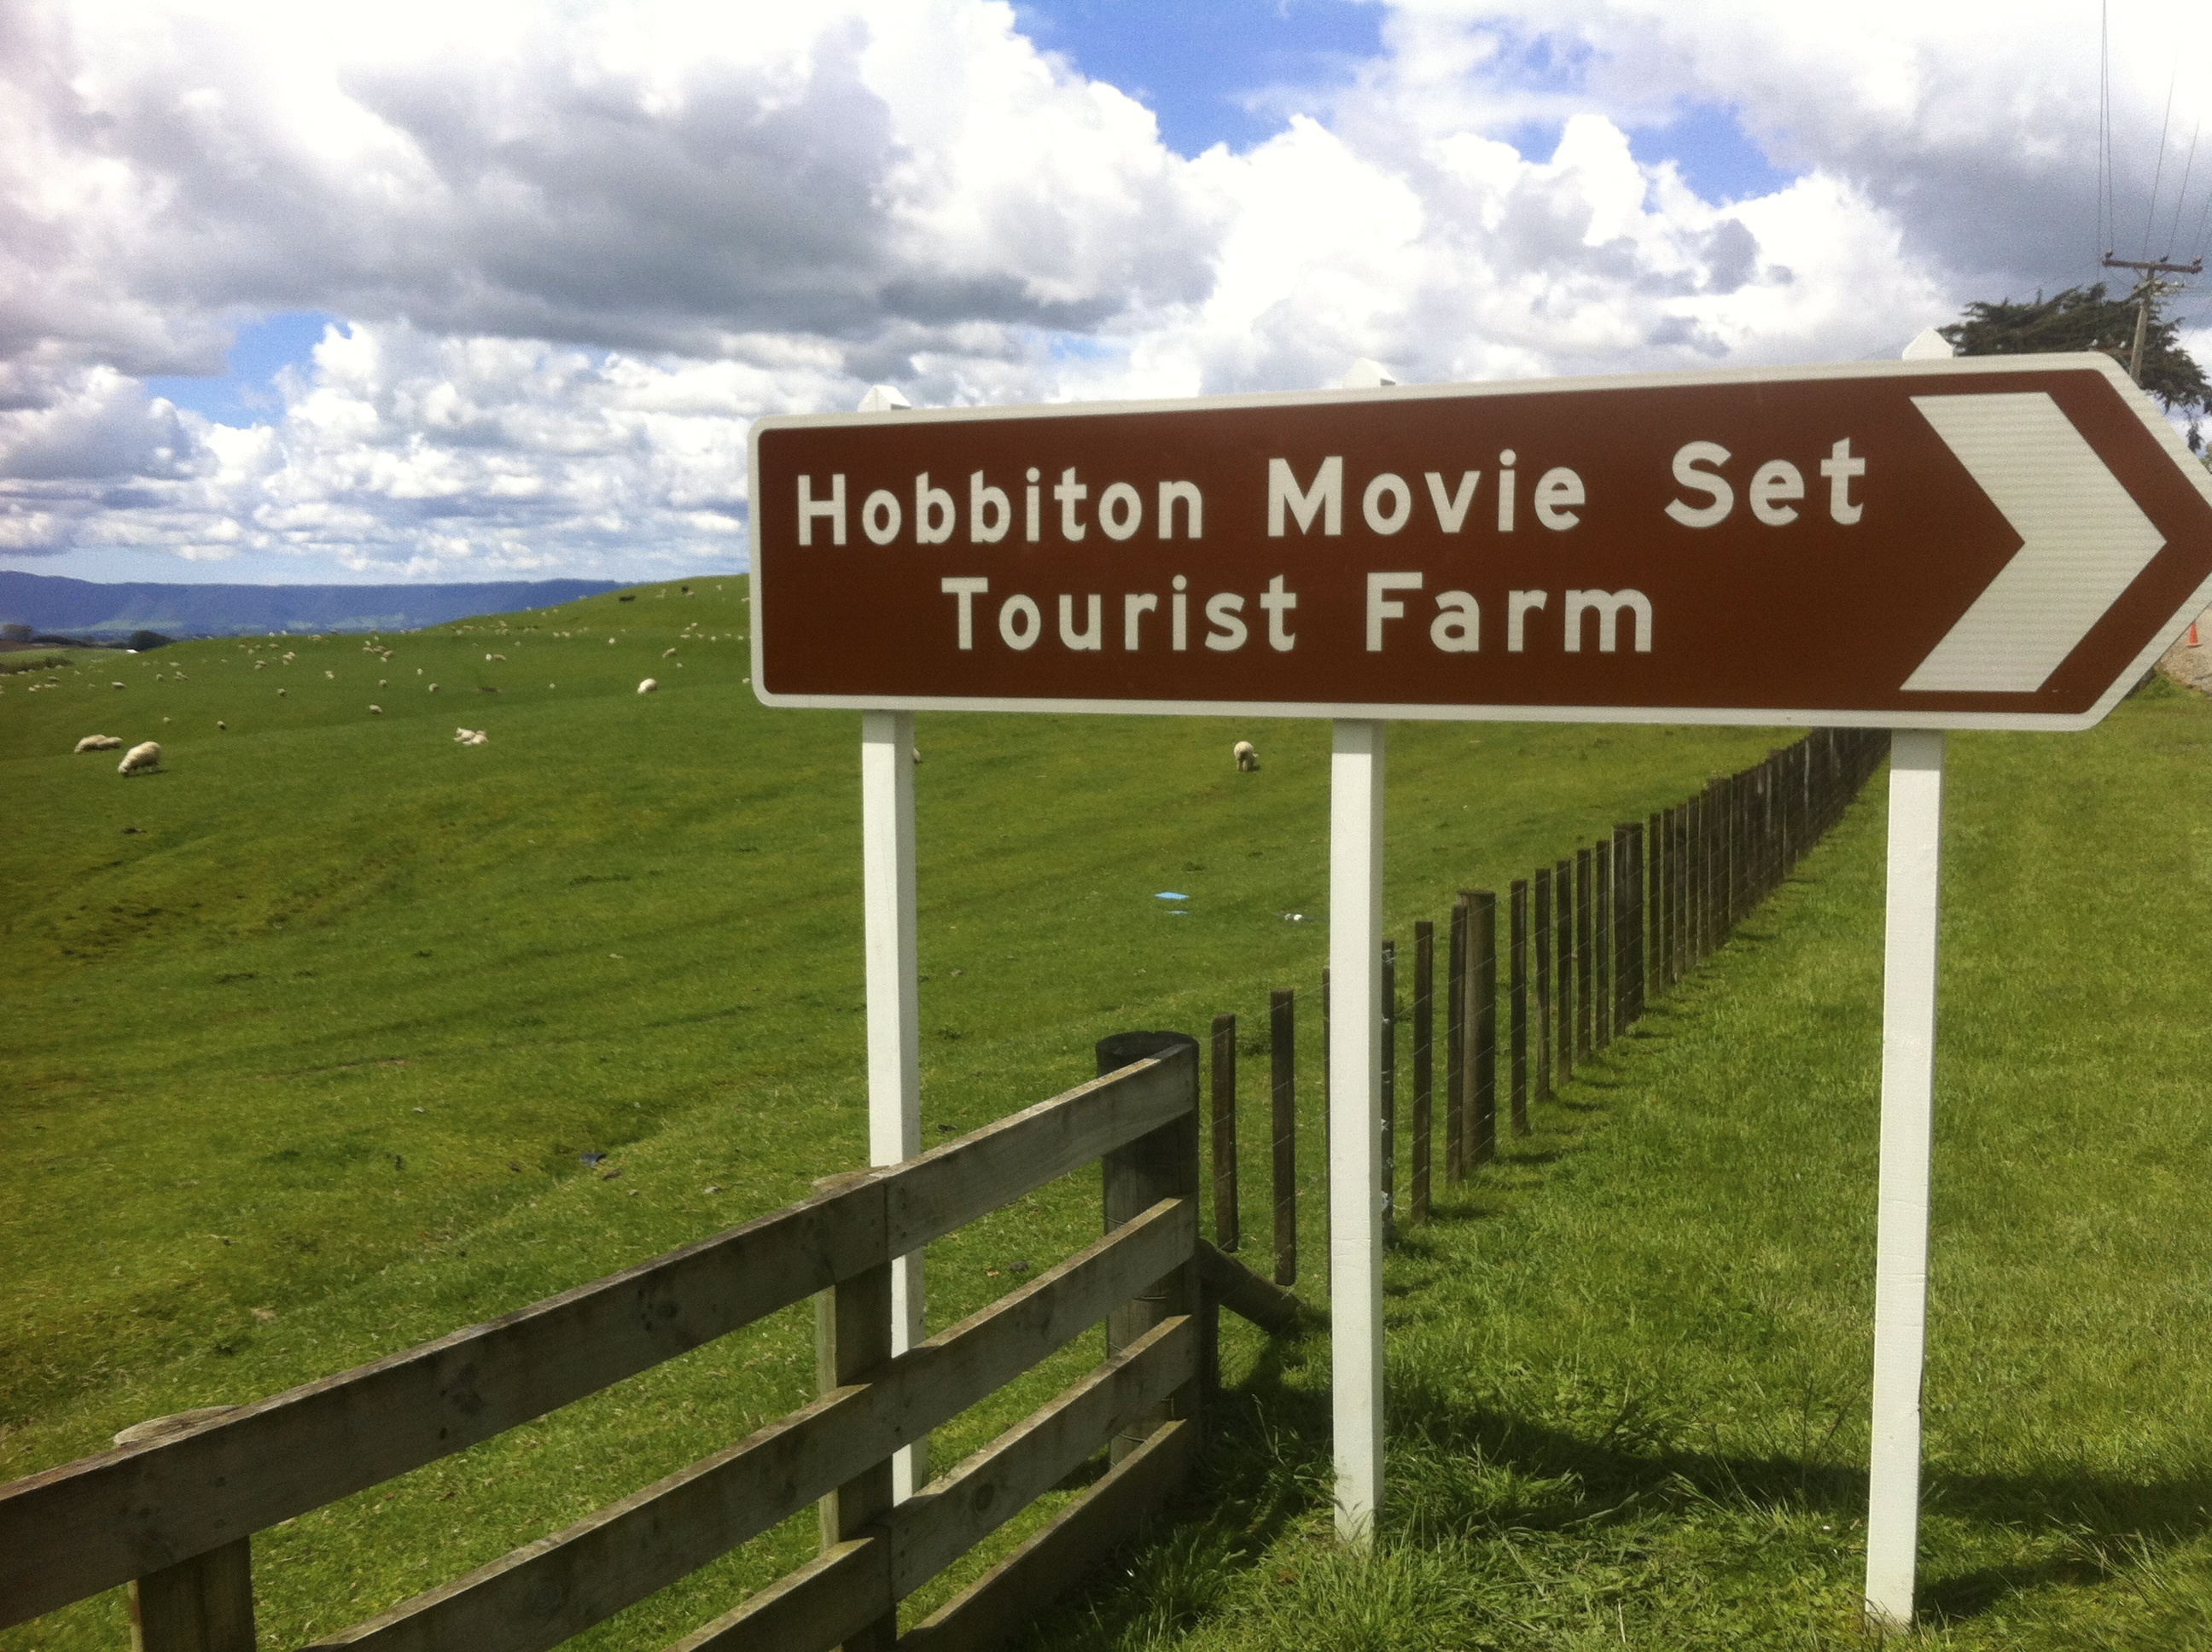 how to get myself to hobbit set in aucland